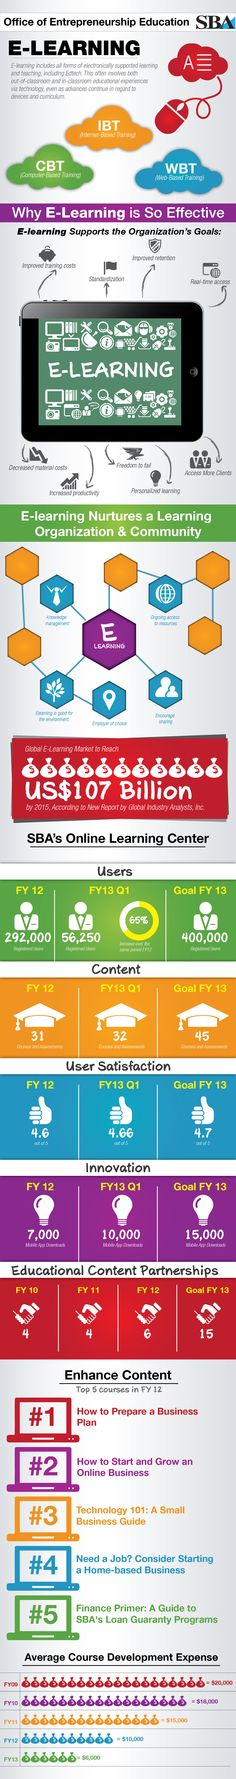 Why E-Learning Infographic - Infographic design